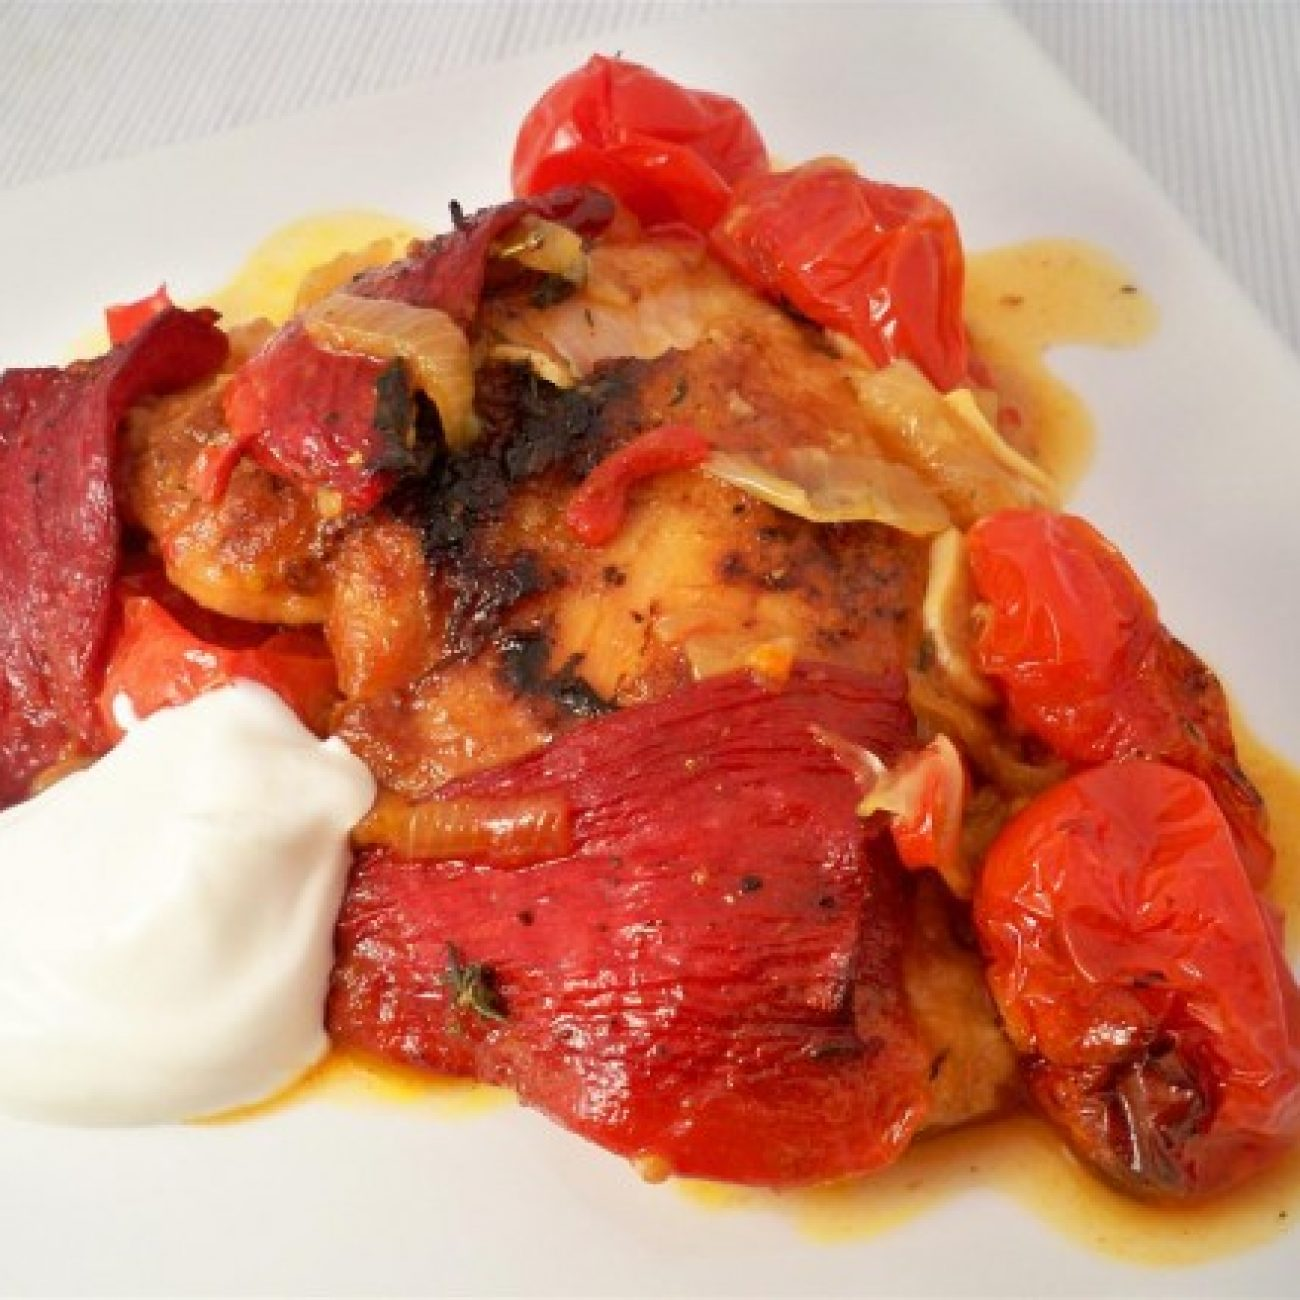 Chicken with peppers, tomato and thyme